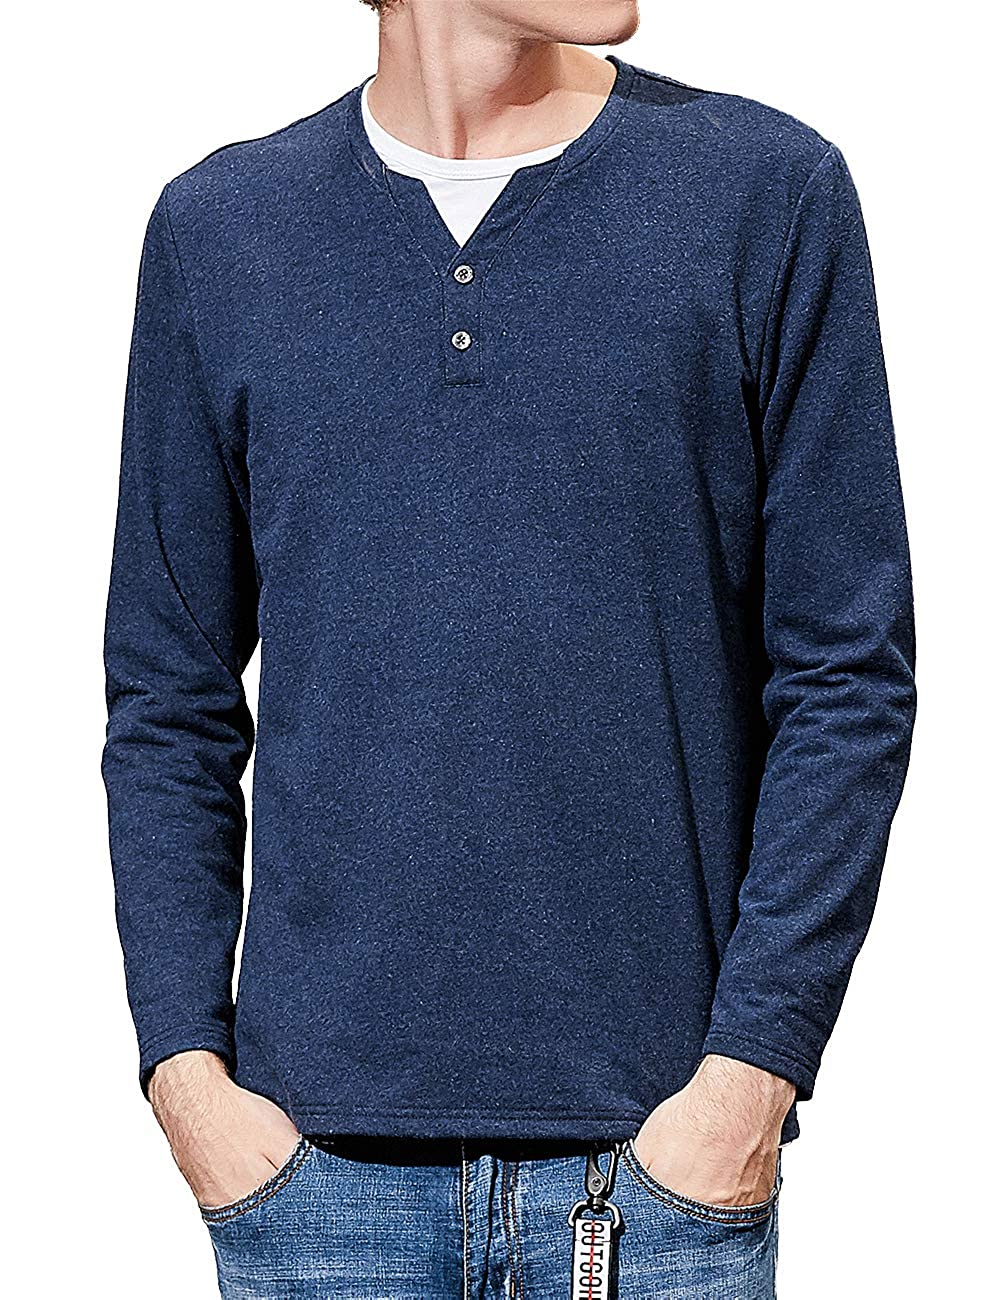 d246d7cb1102 Top 10 wholesale Thick Long Sleeve Shirts - Chinabrands.com